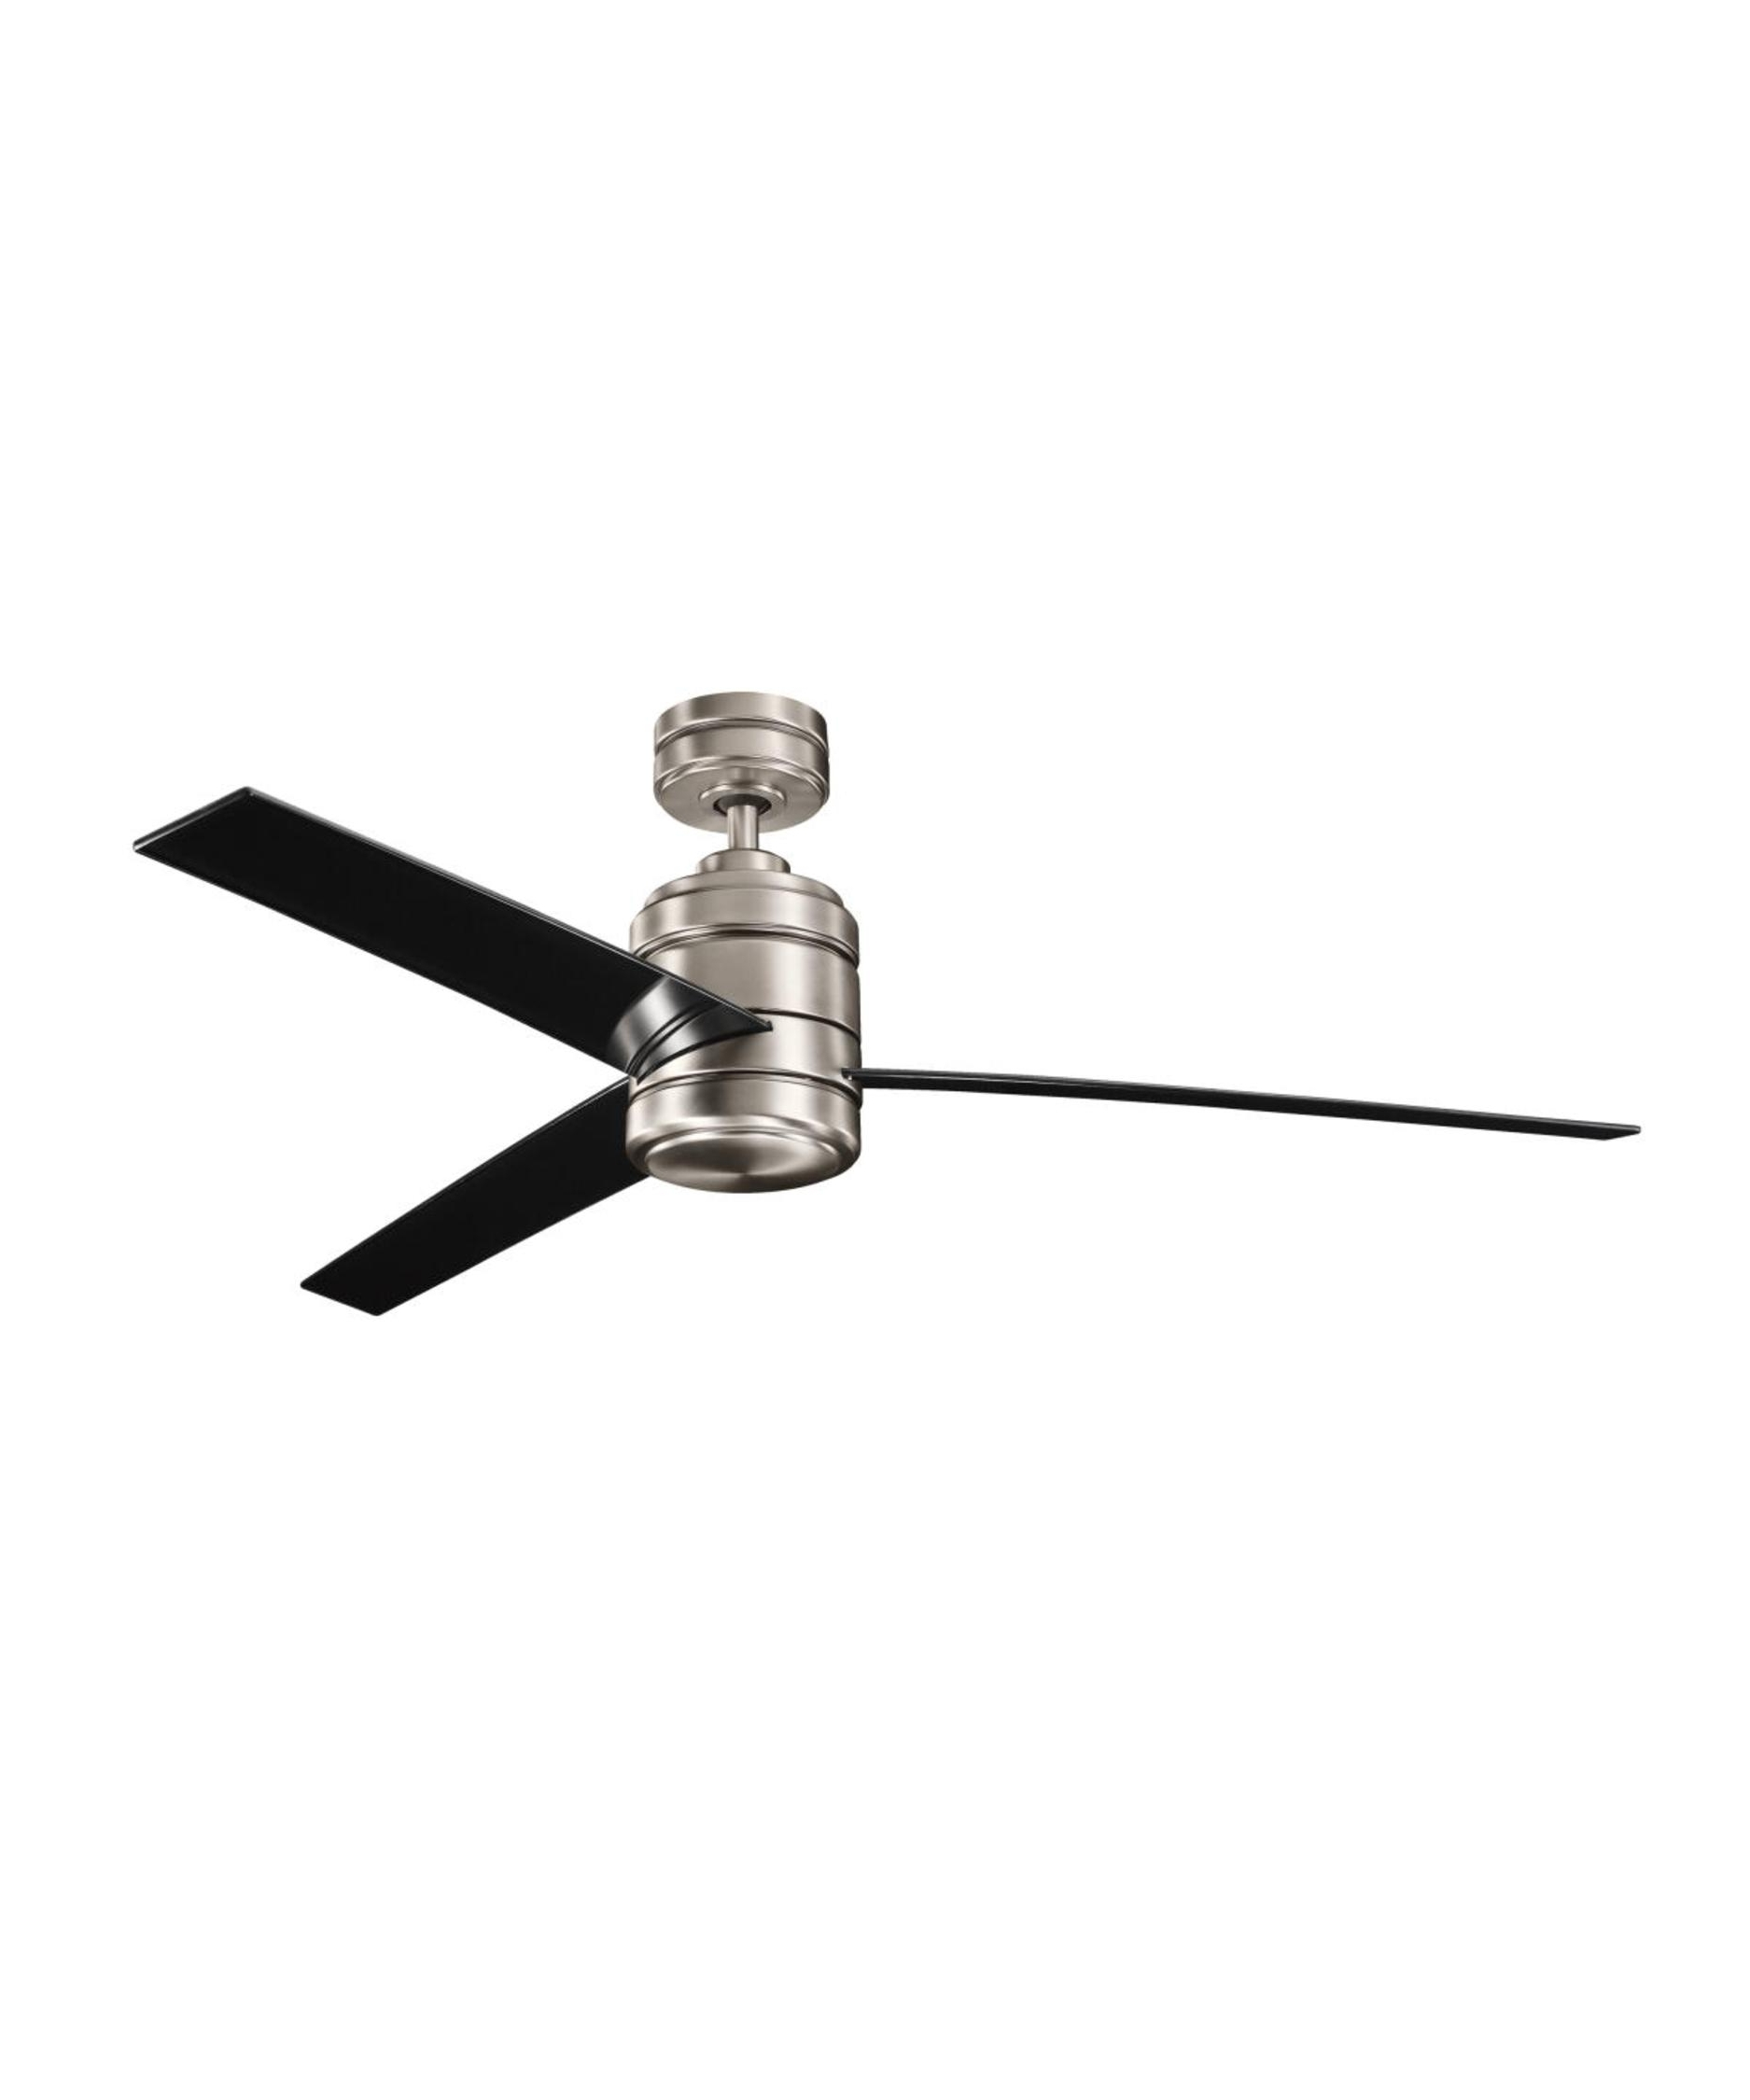 Well Liked Kichler Outdoor Ceiling Fans With Lights Within Kichler 300146 Arkwright 58 Inch 3 Blade Ceiling Fan (View 5 of 20)